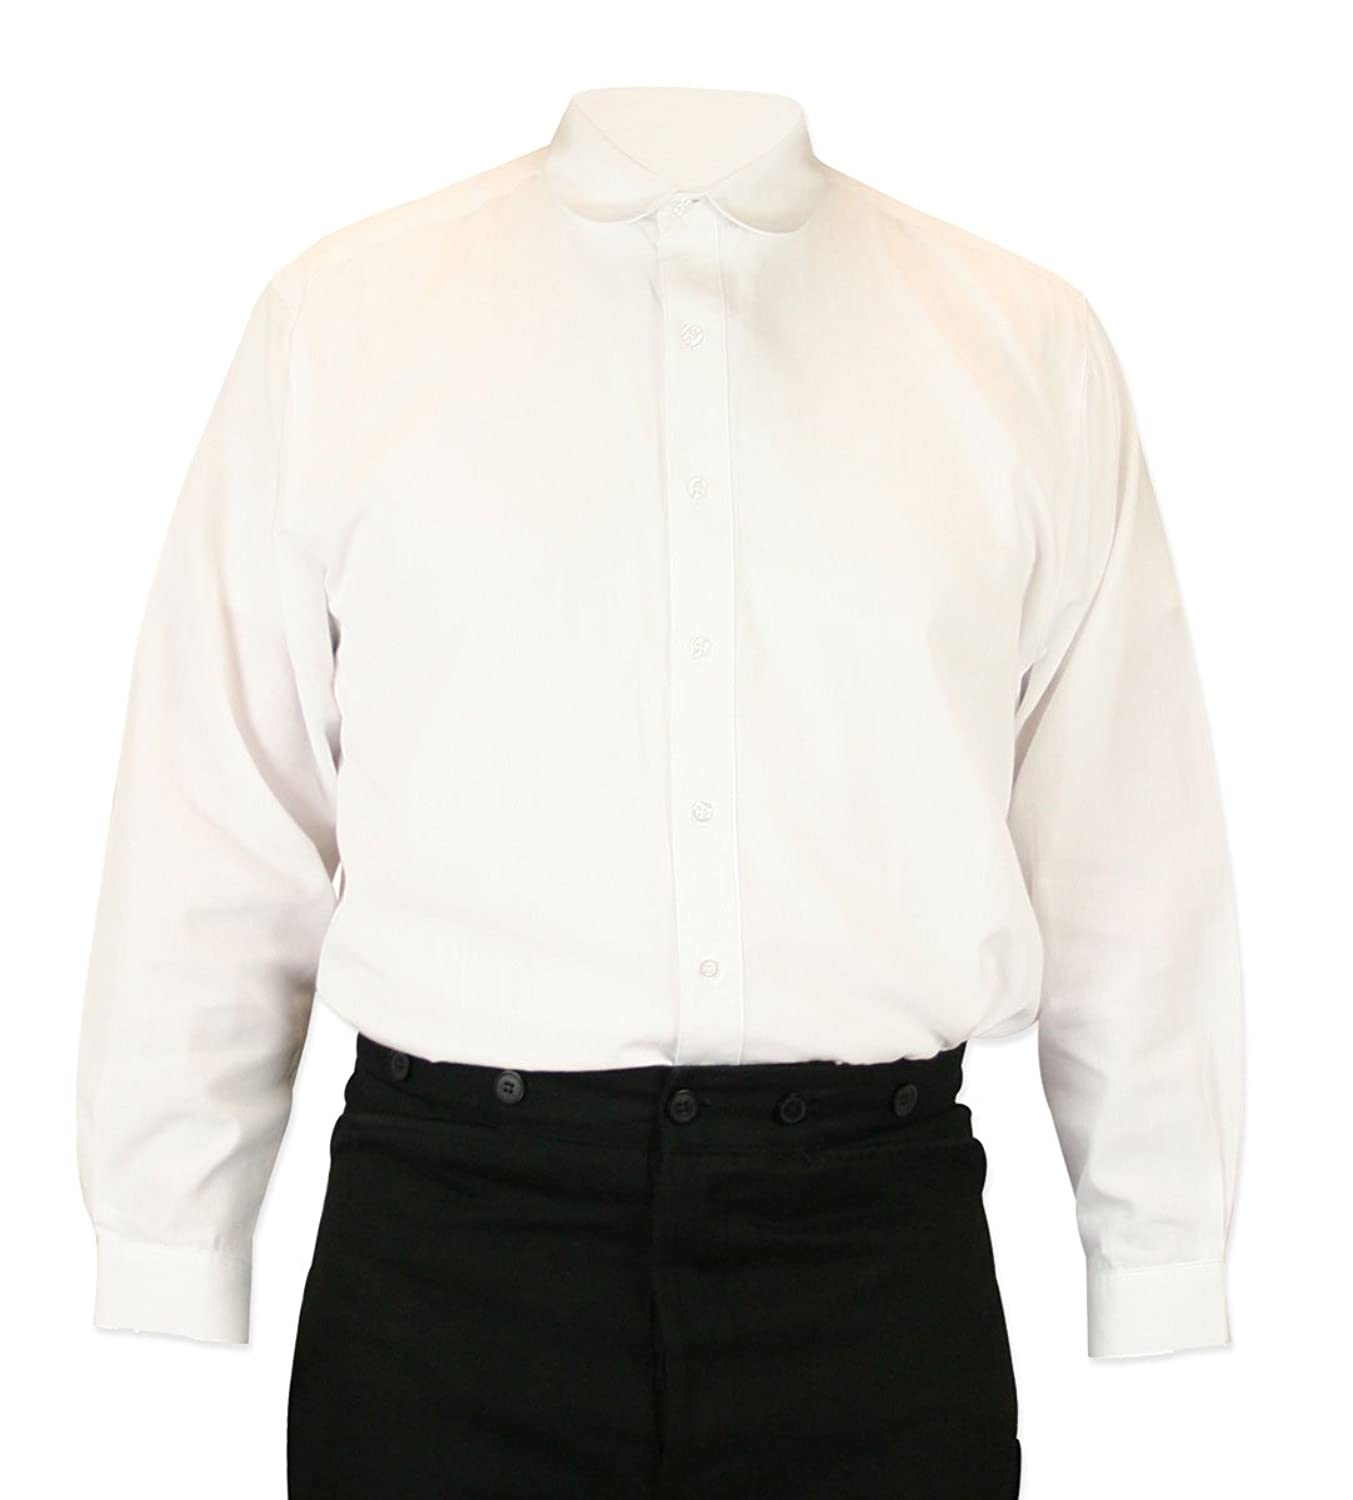 1920s Style Men's Shirts | Peaky Blinders Shirts and Collars Virgil Club Collar Dress Shirt $59.95 AT vintagedancer.com